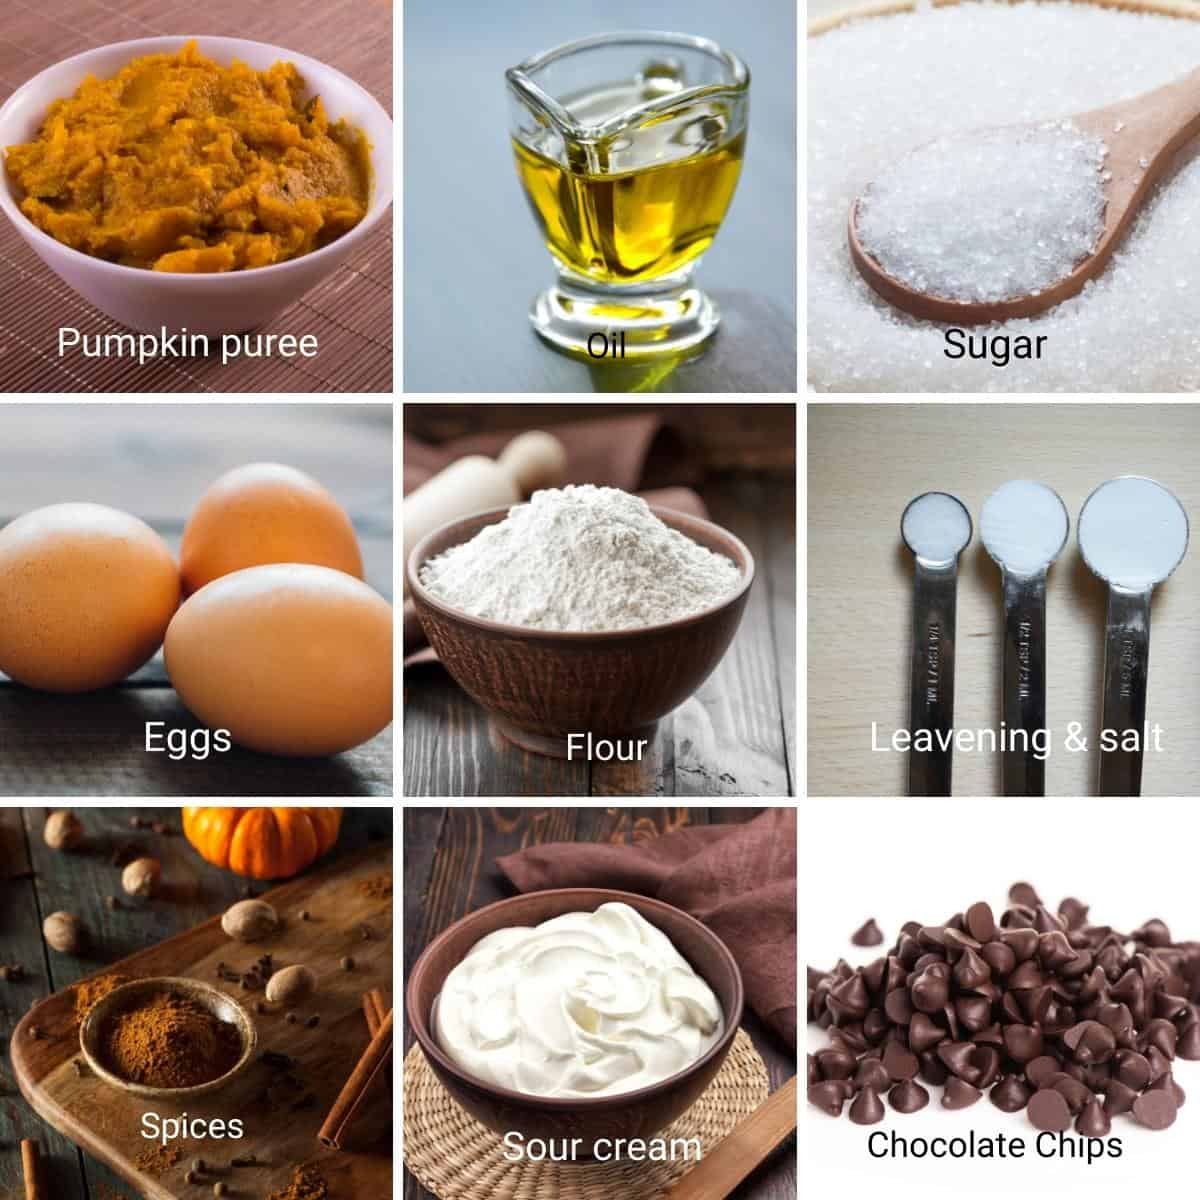 Ingredients for pumpkin cake with chocolate chips.